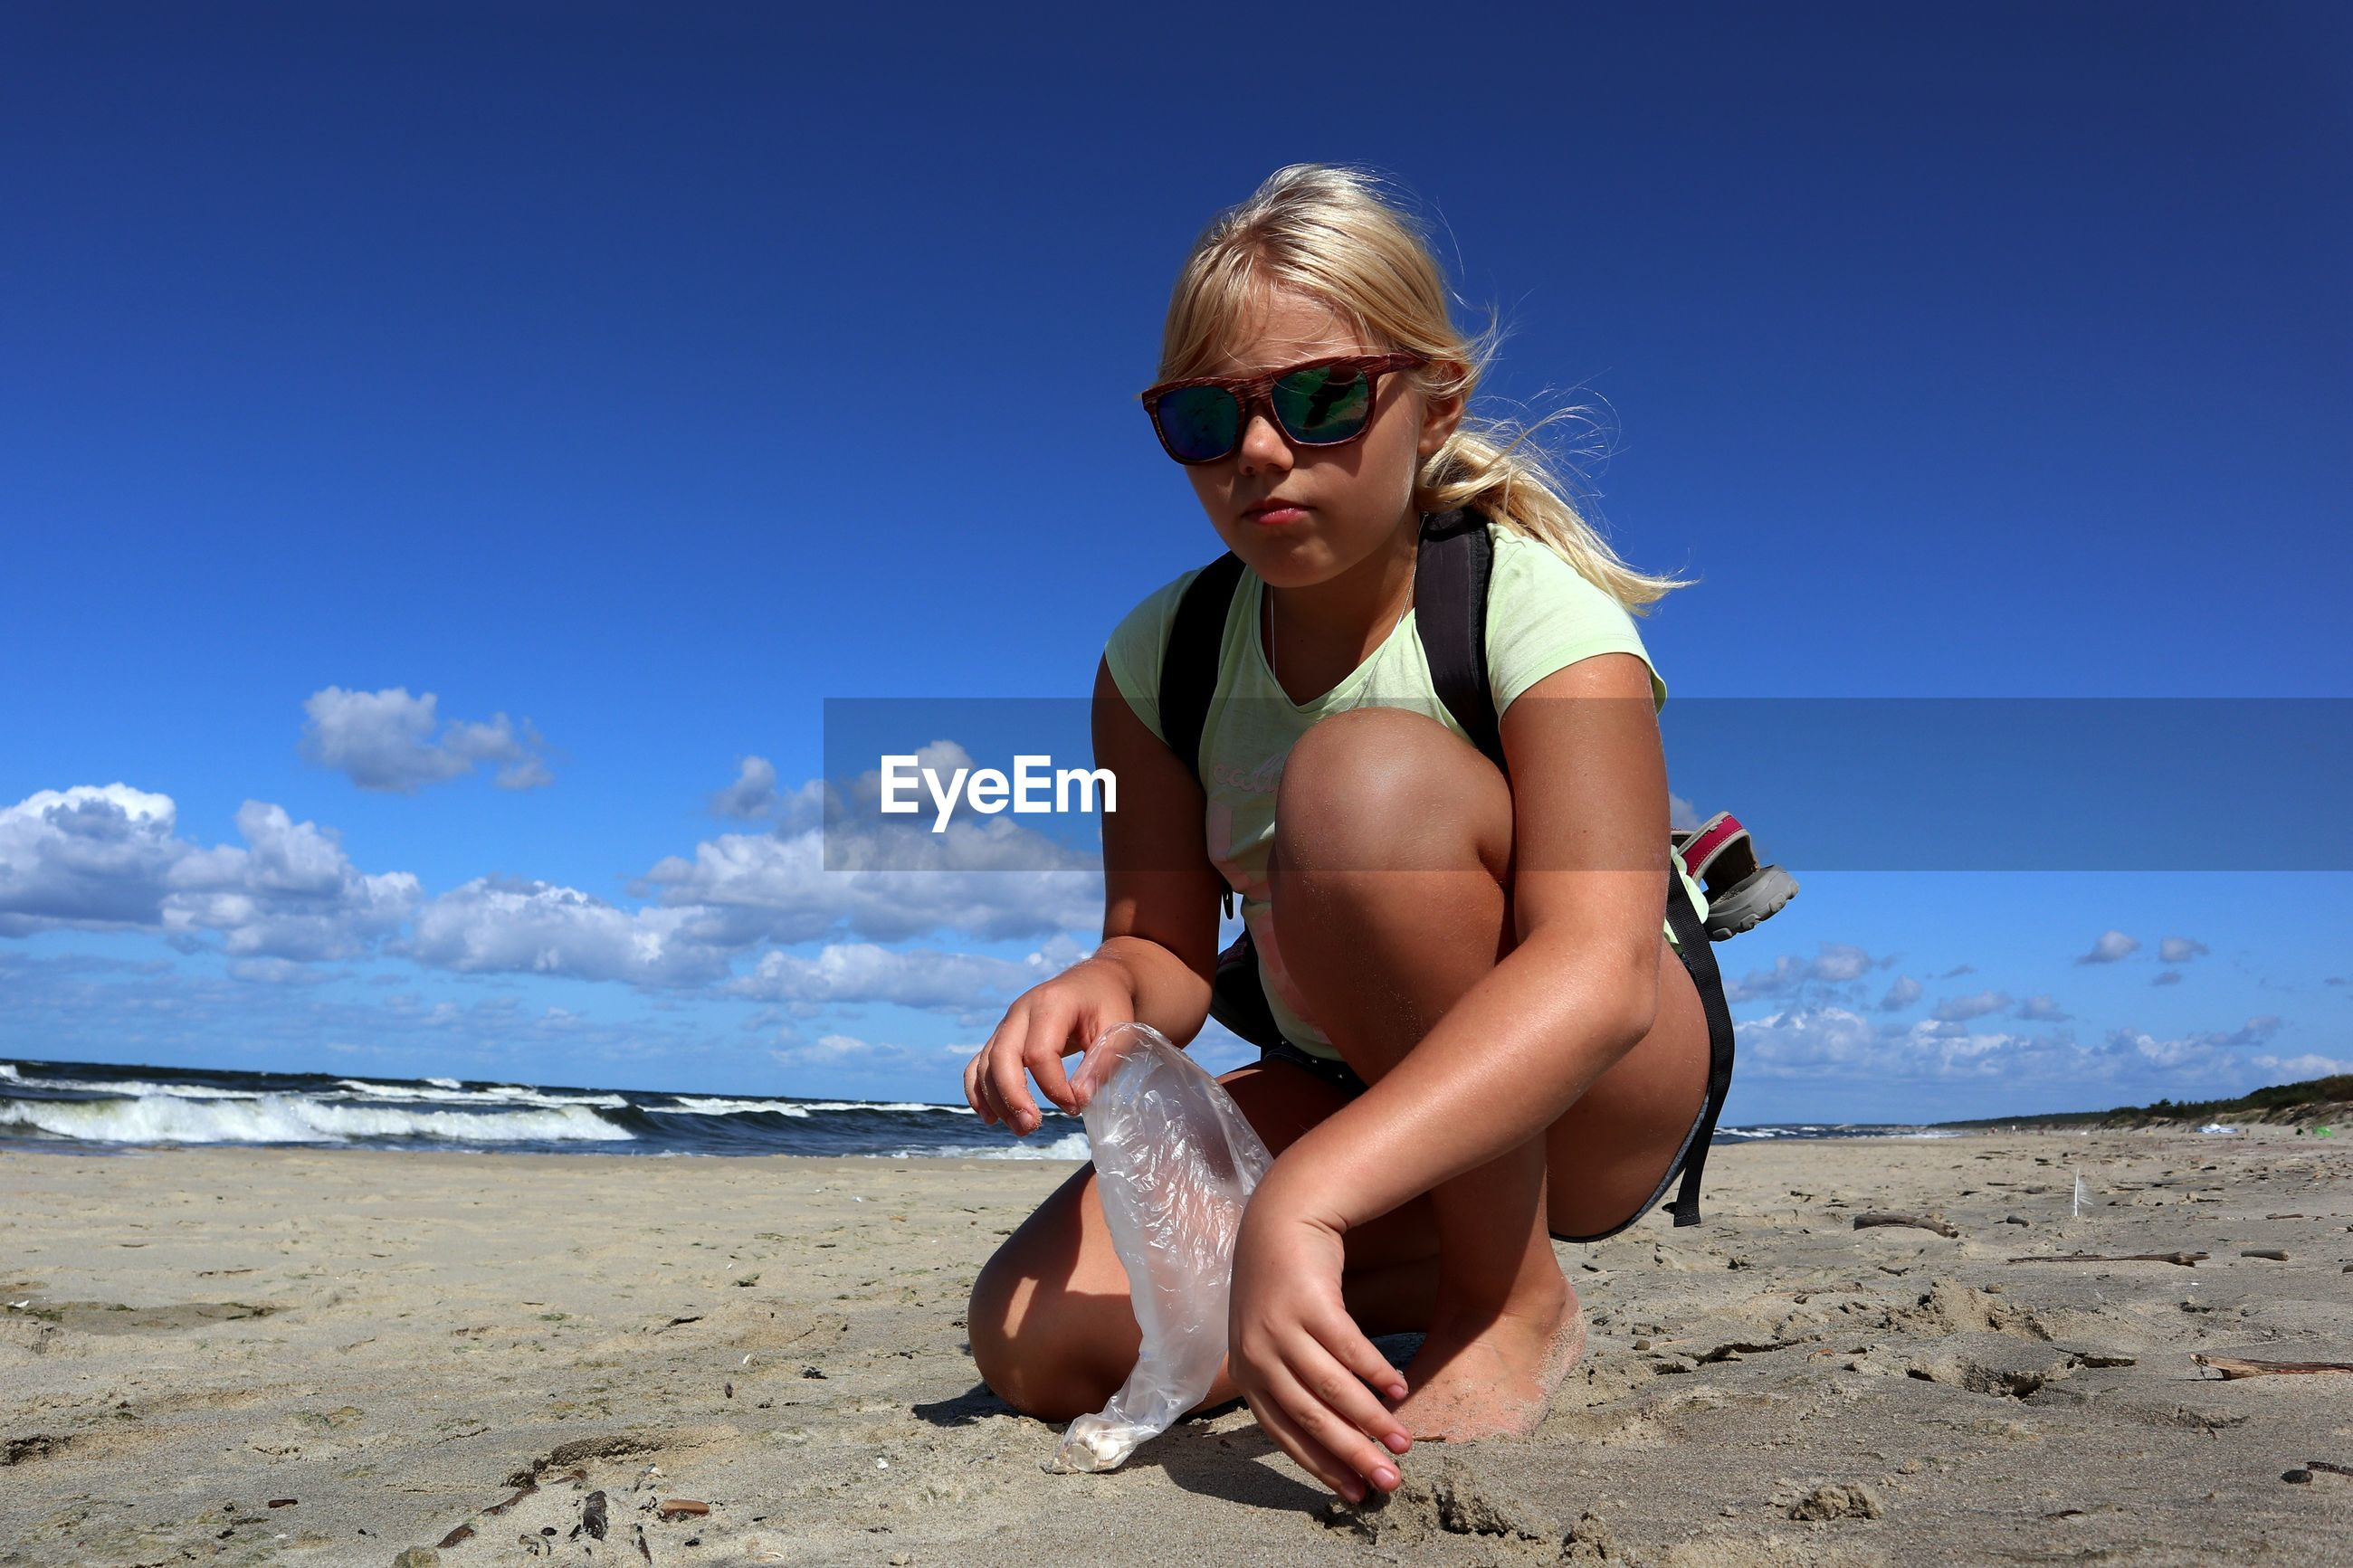 Portrait of girl holding plastic bag while crouching at beach against blue sky